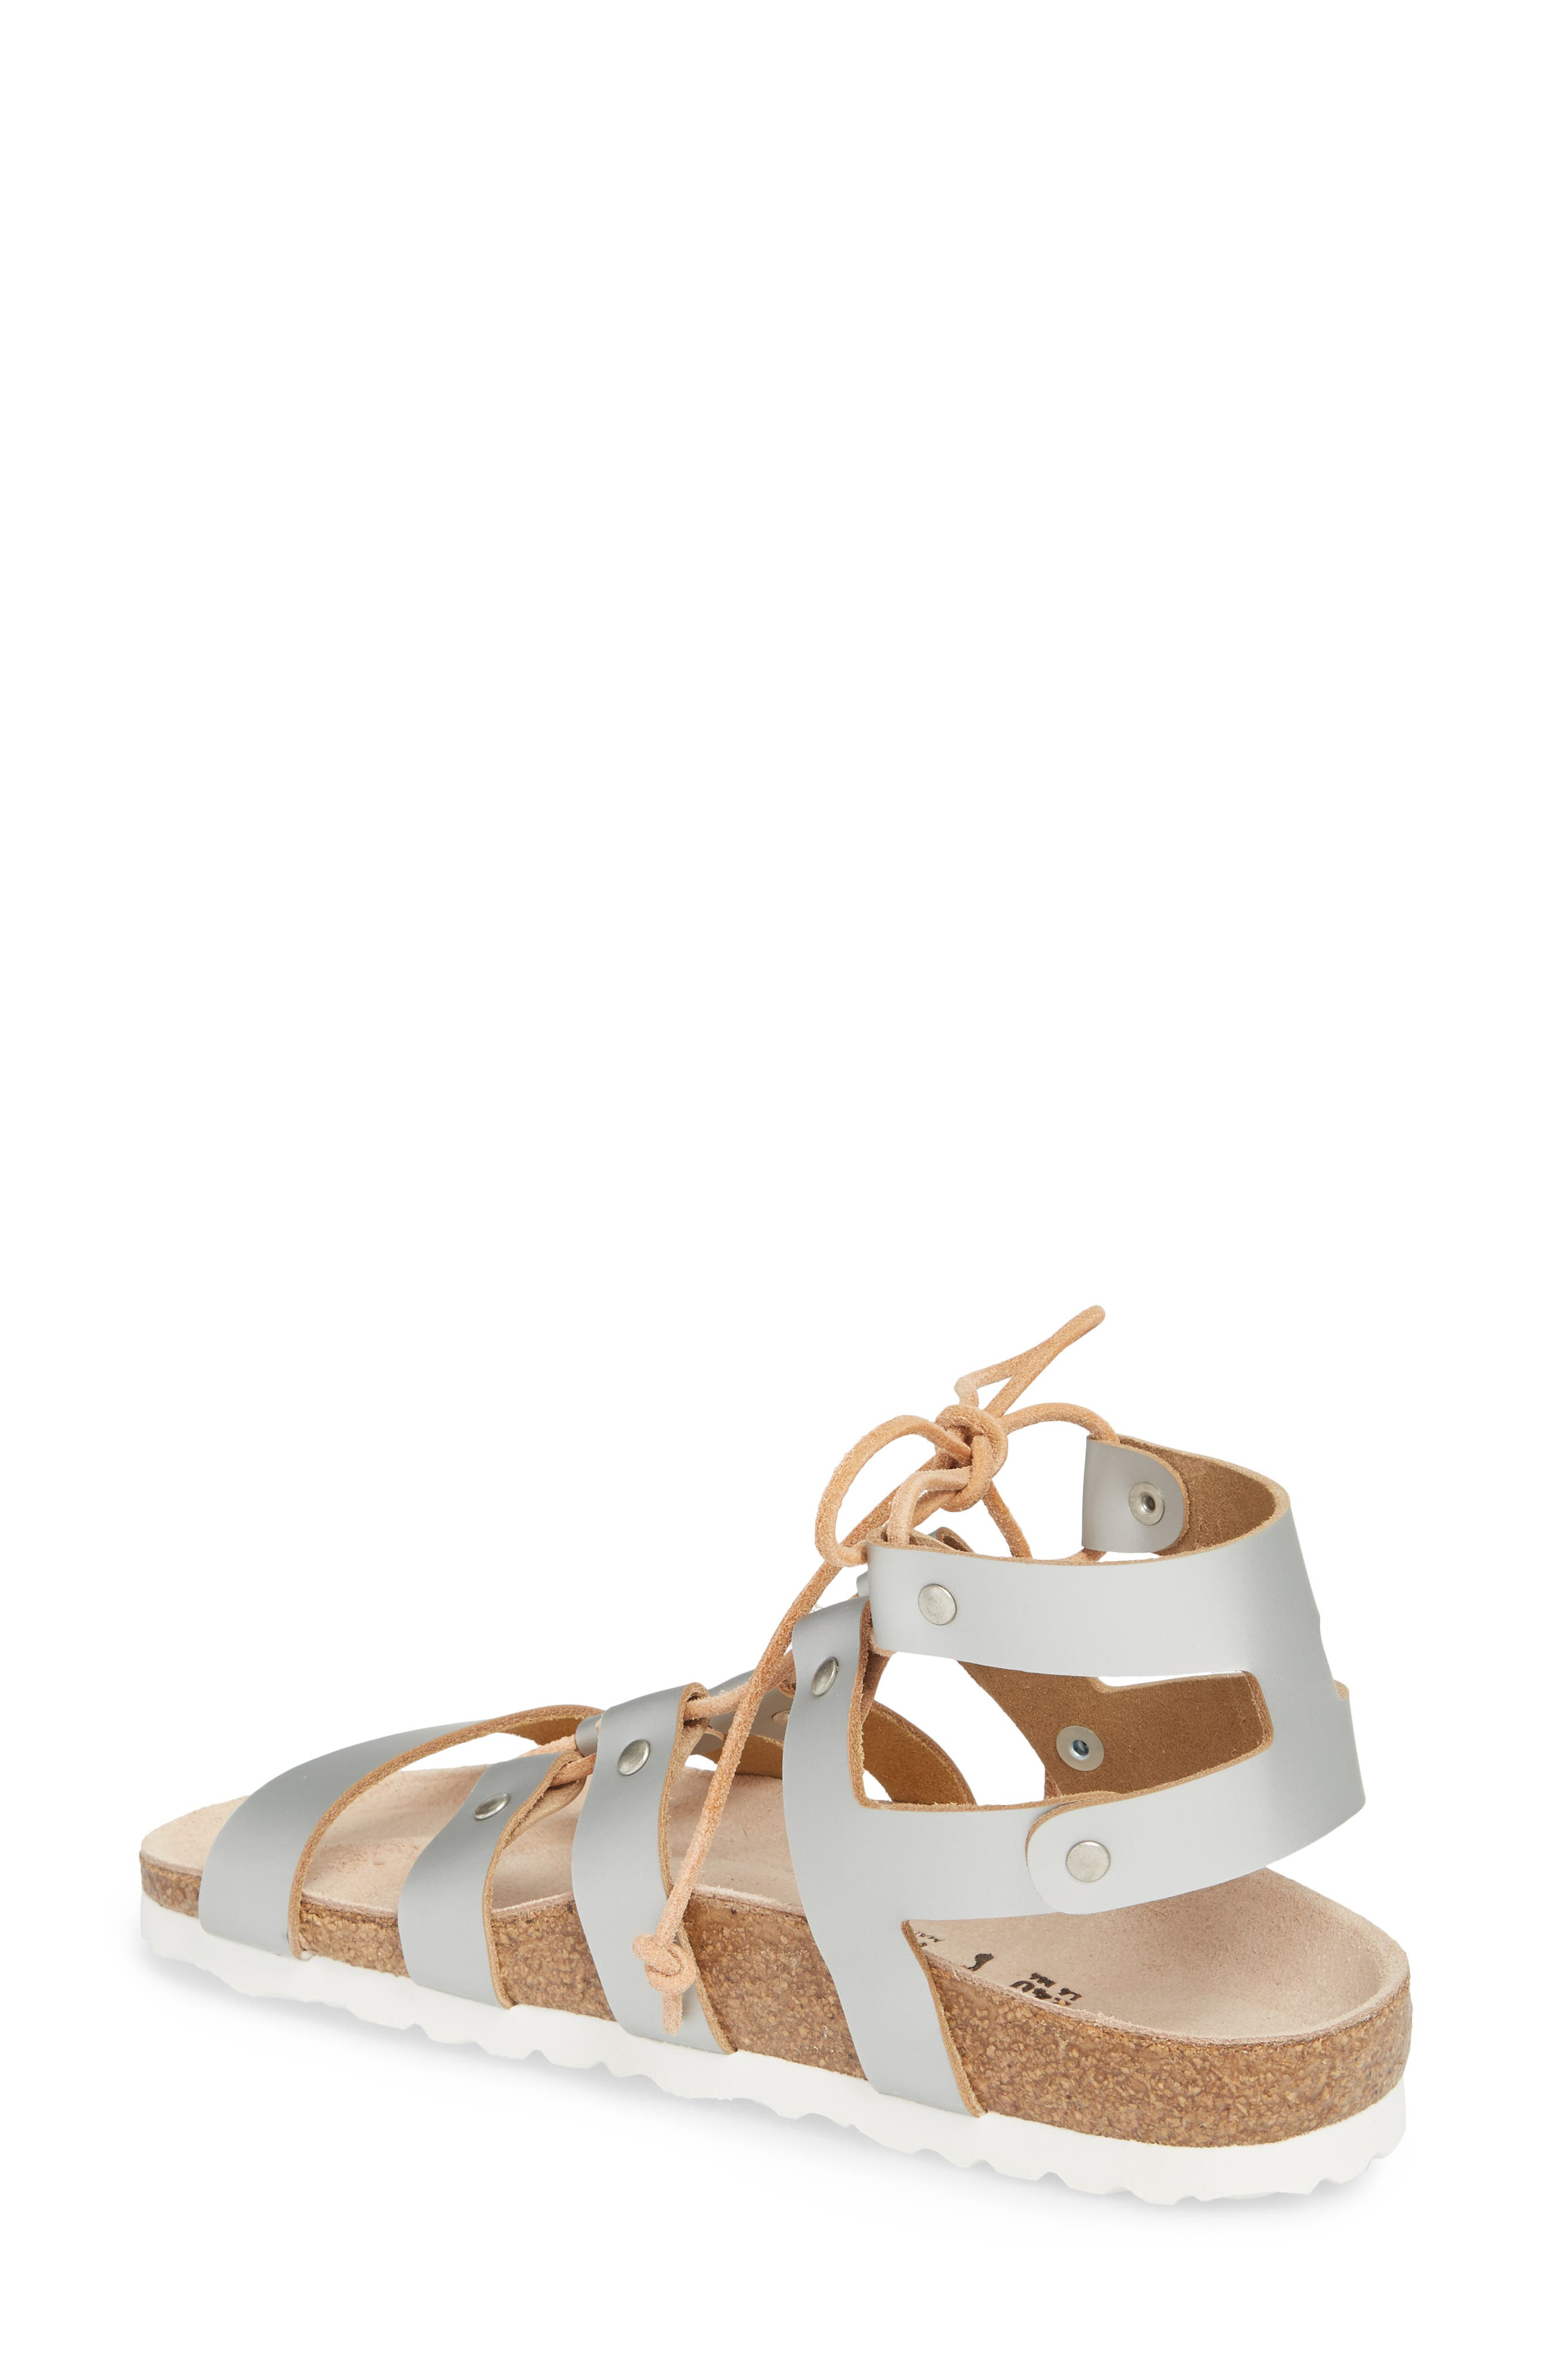 Papillio by Birkenstock Cleo Gladiator Sandal,                             Alternate thumbnail 2, color,                             Frosted Silver Leather